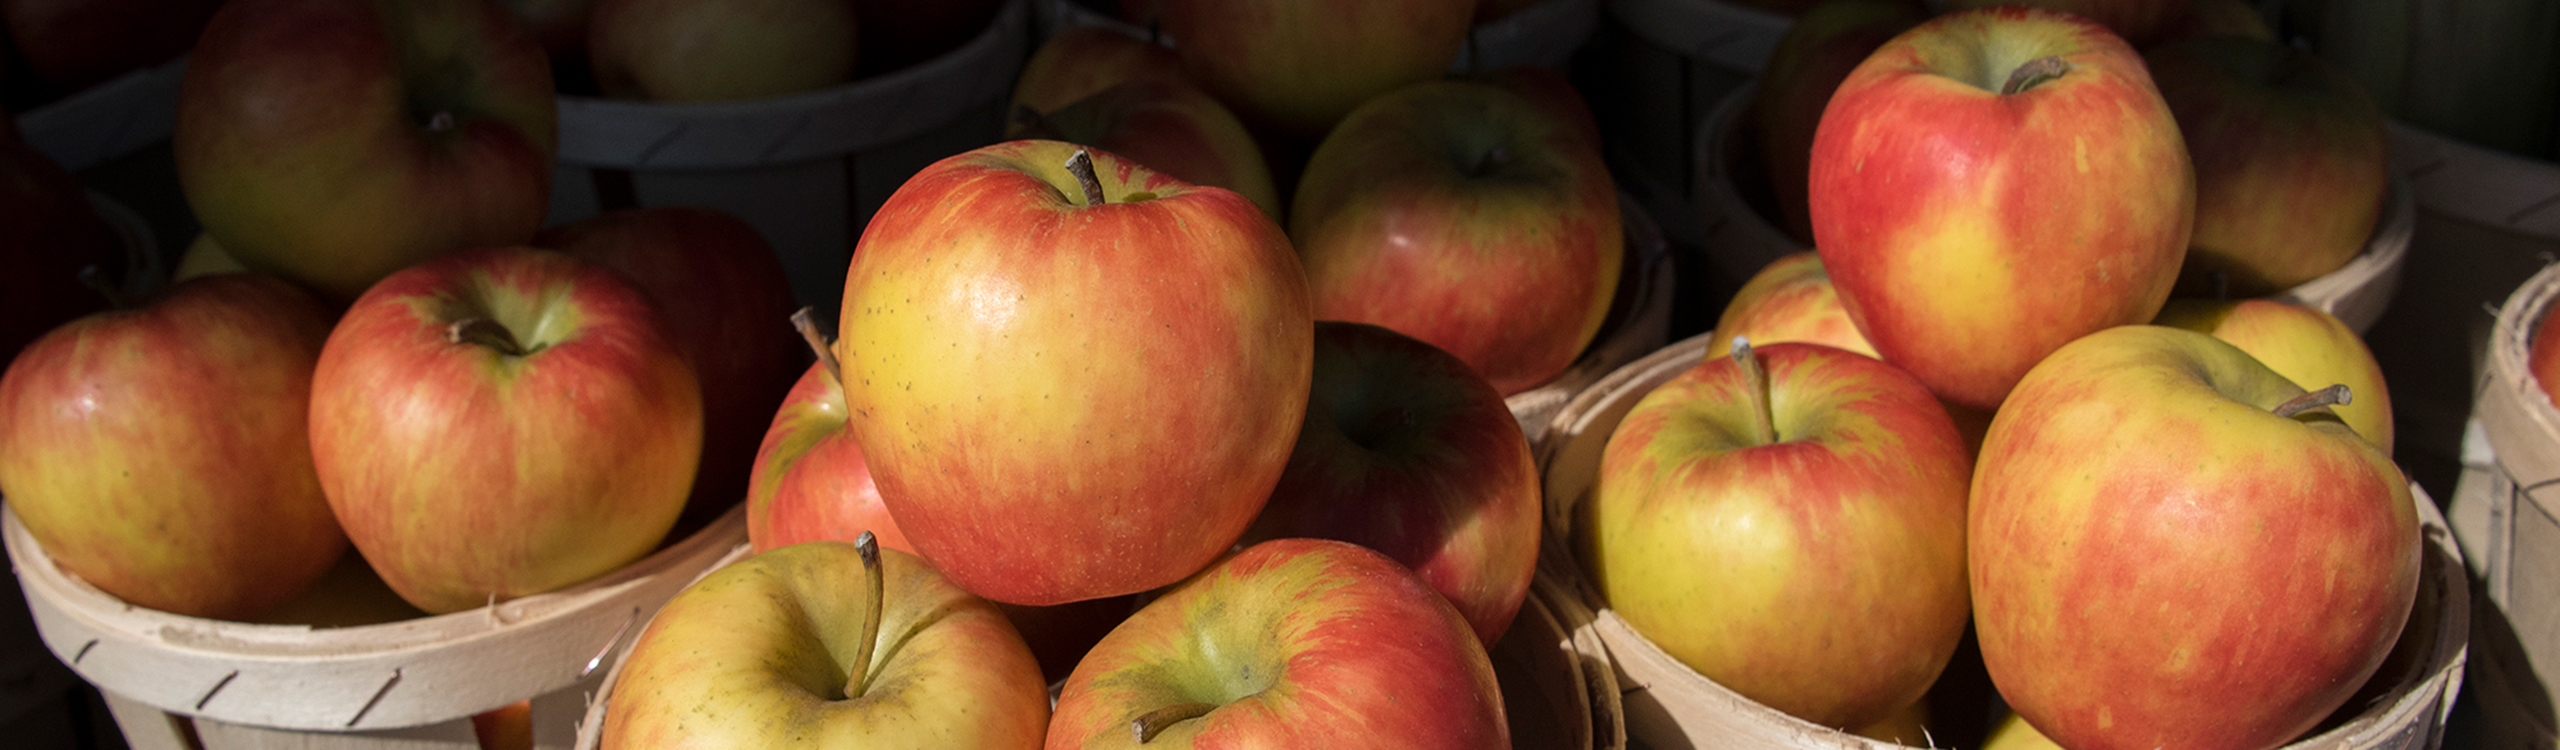 New Jersey Apples